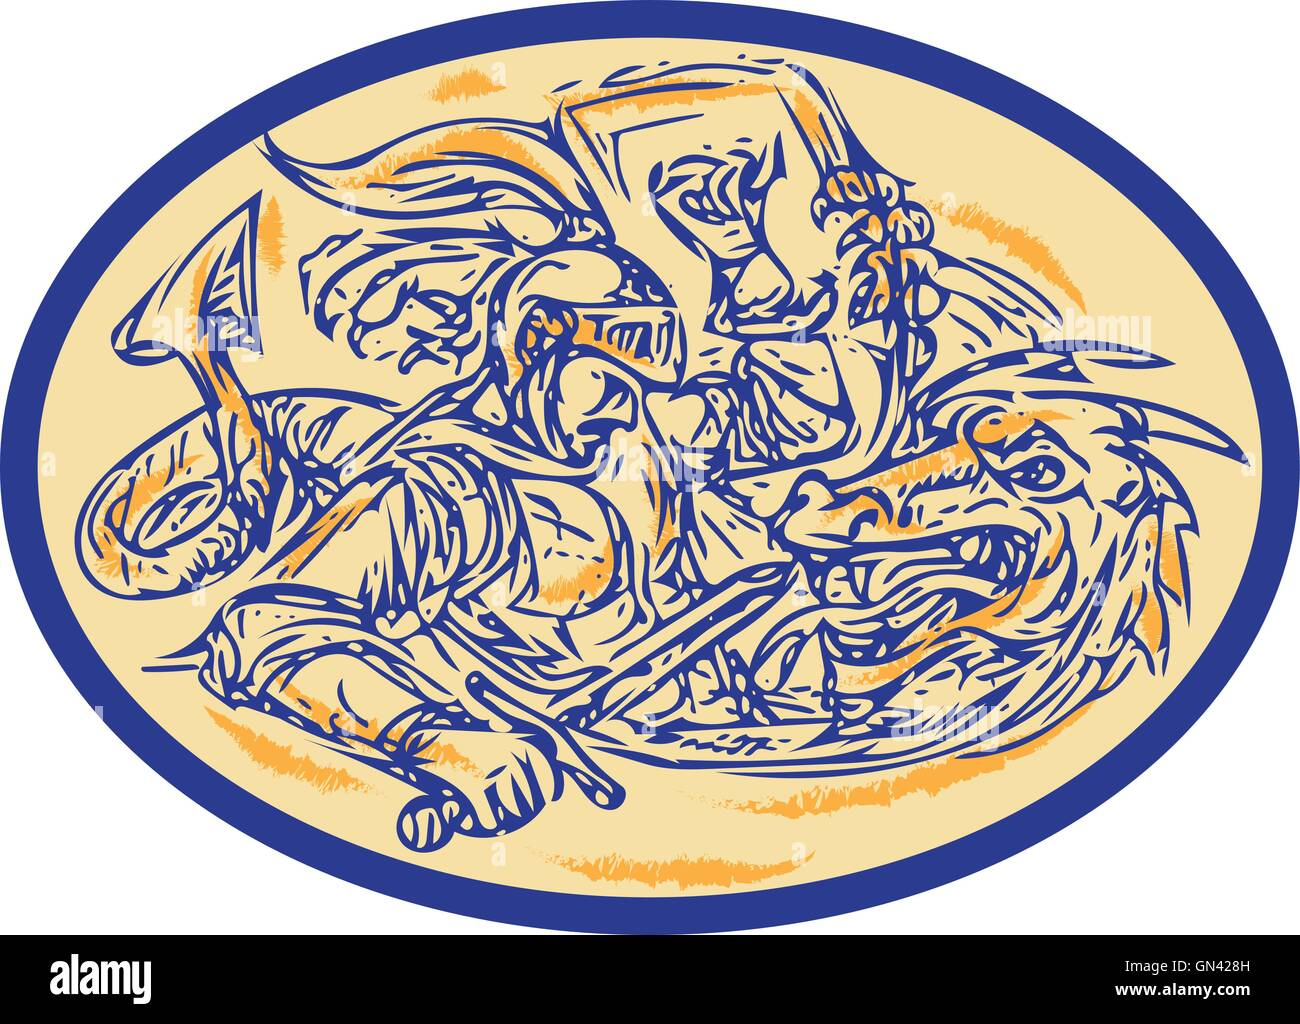 St George Fighting Dragon Drawing - Stock Vector